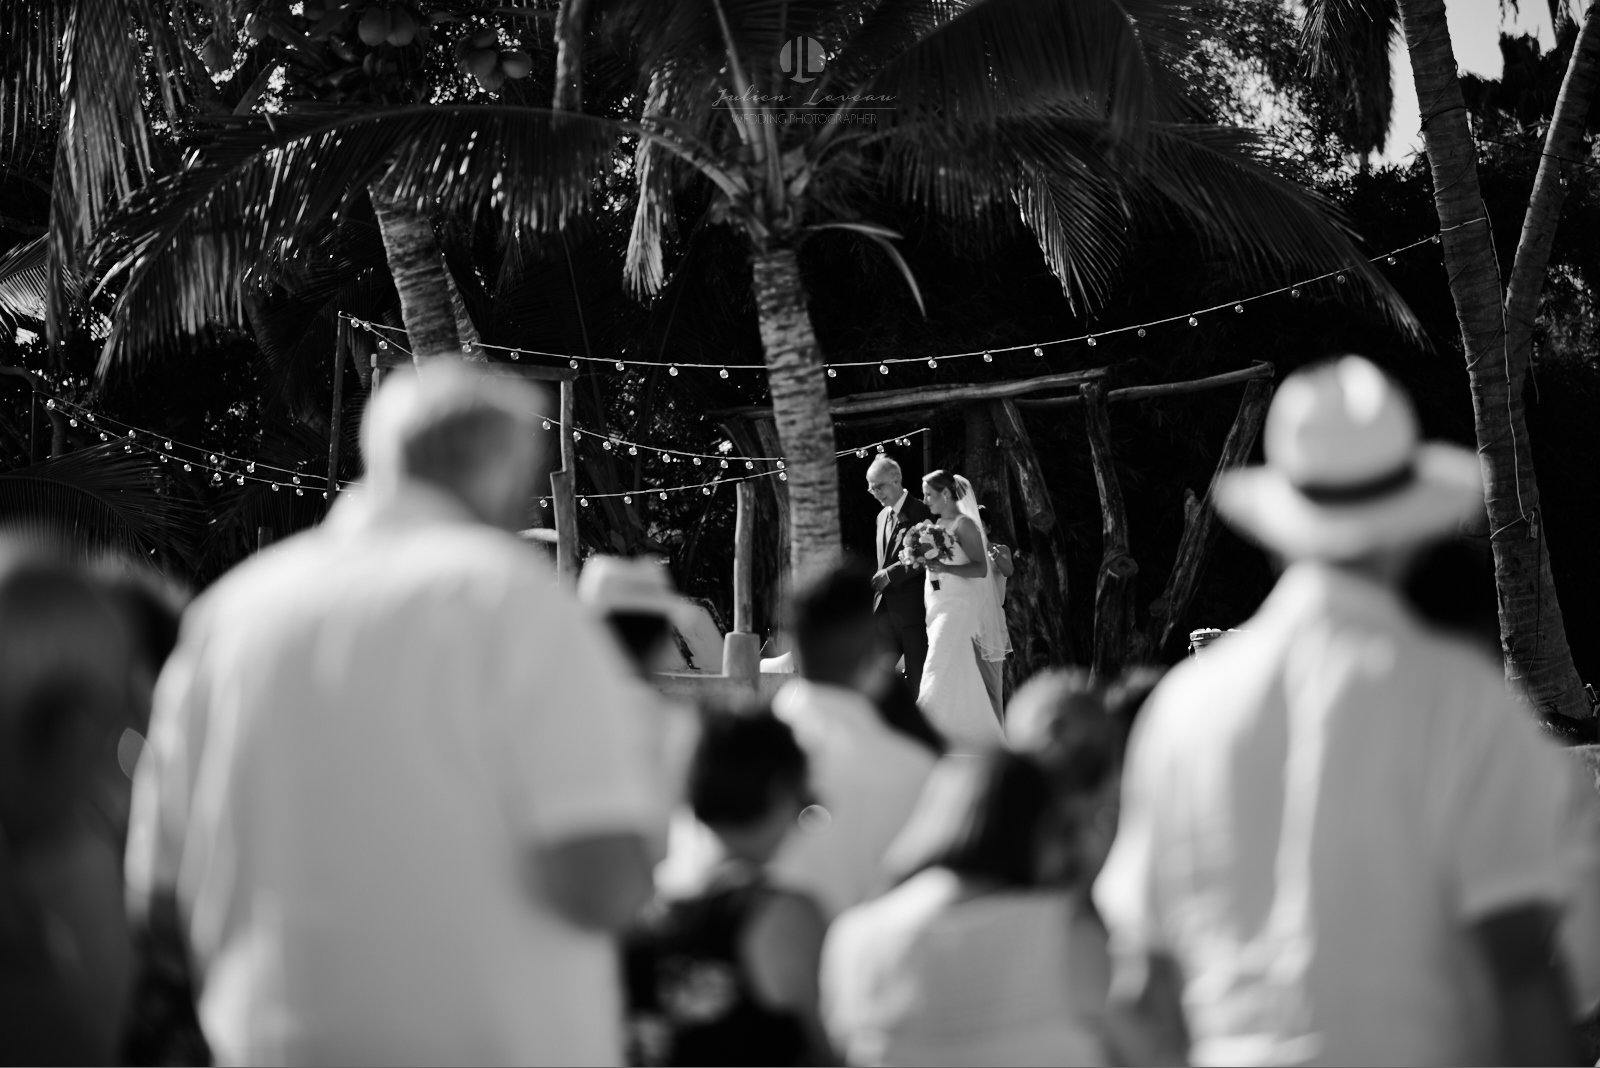 Wedding Photography - Dad and bride walking down the aisle